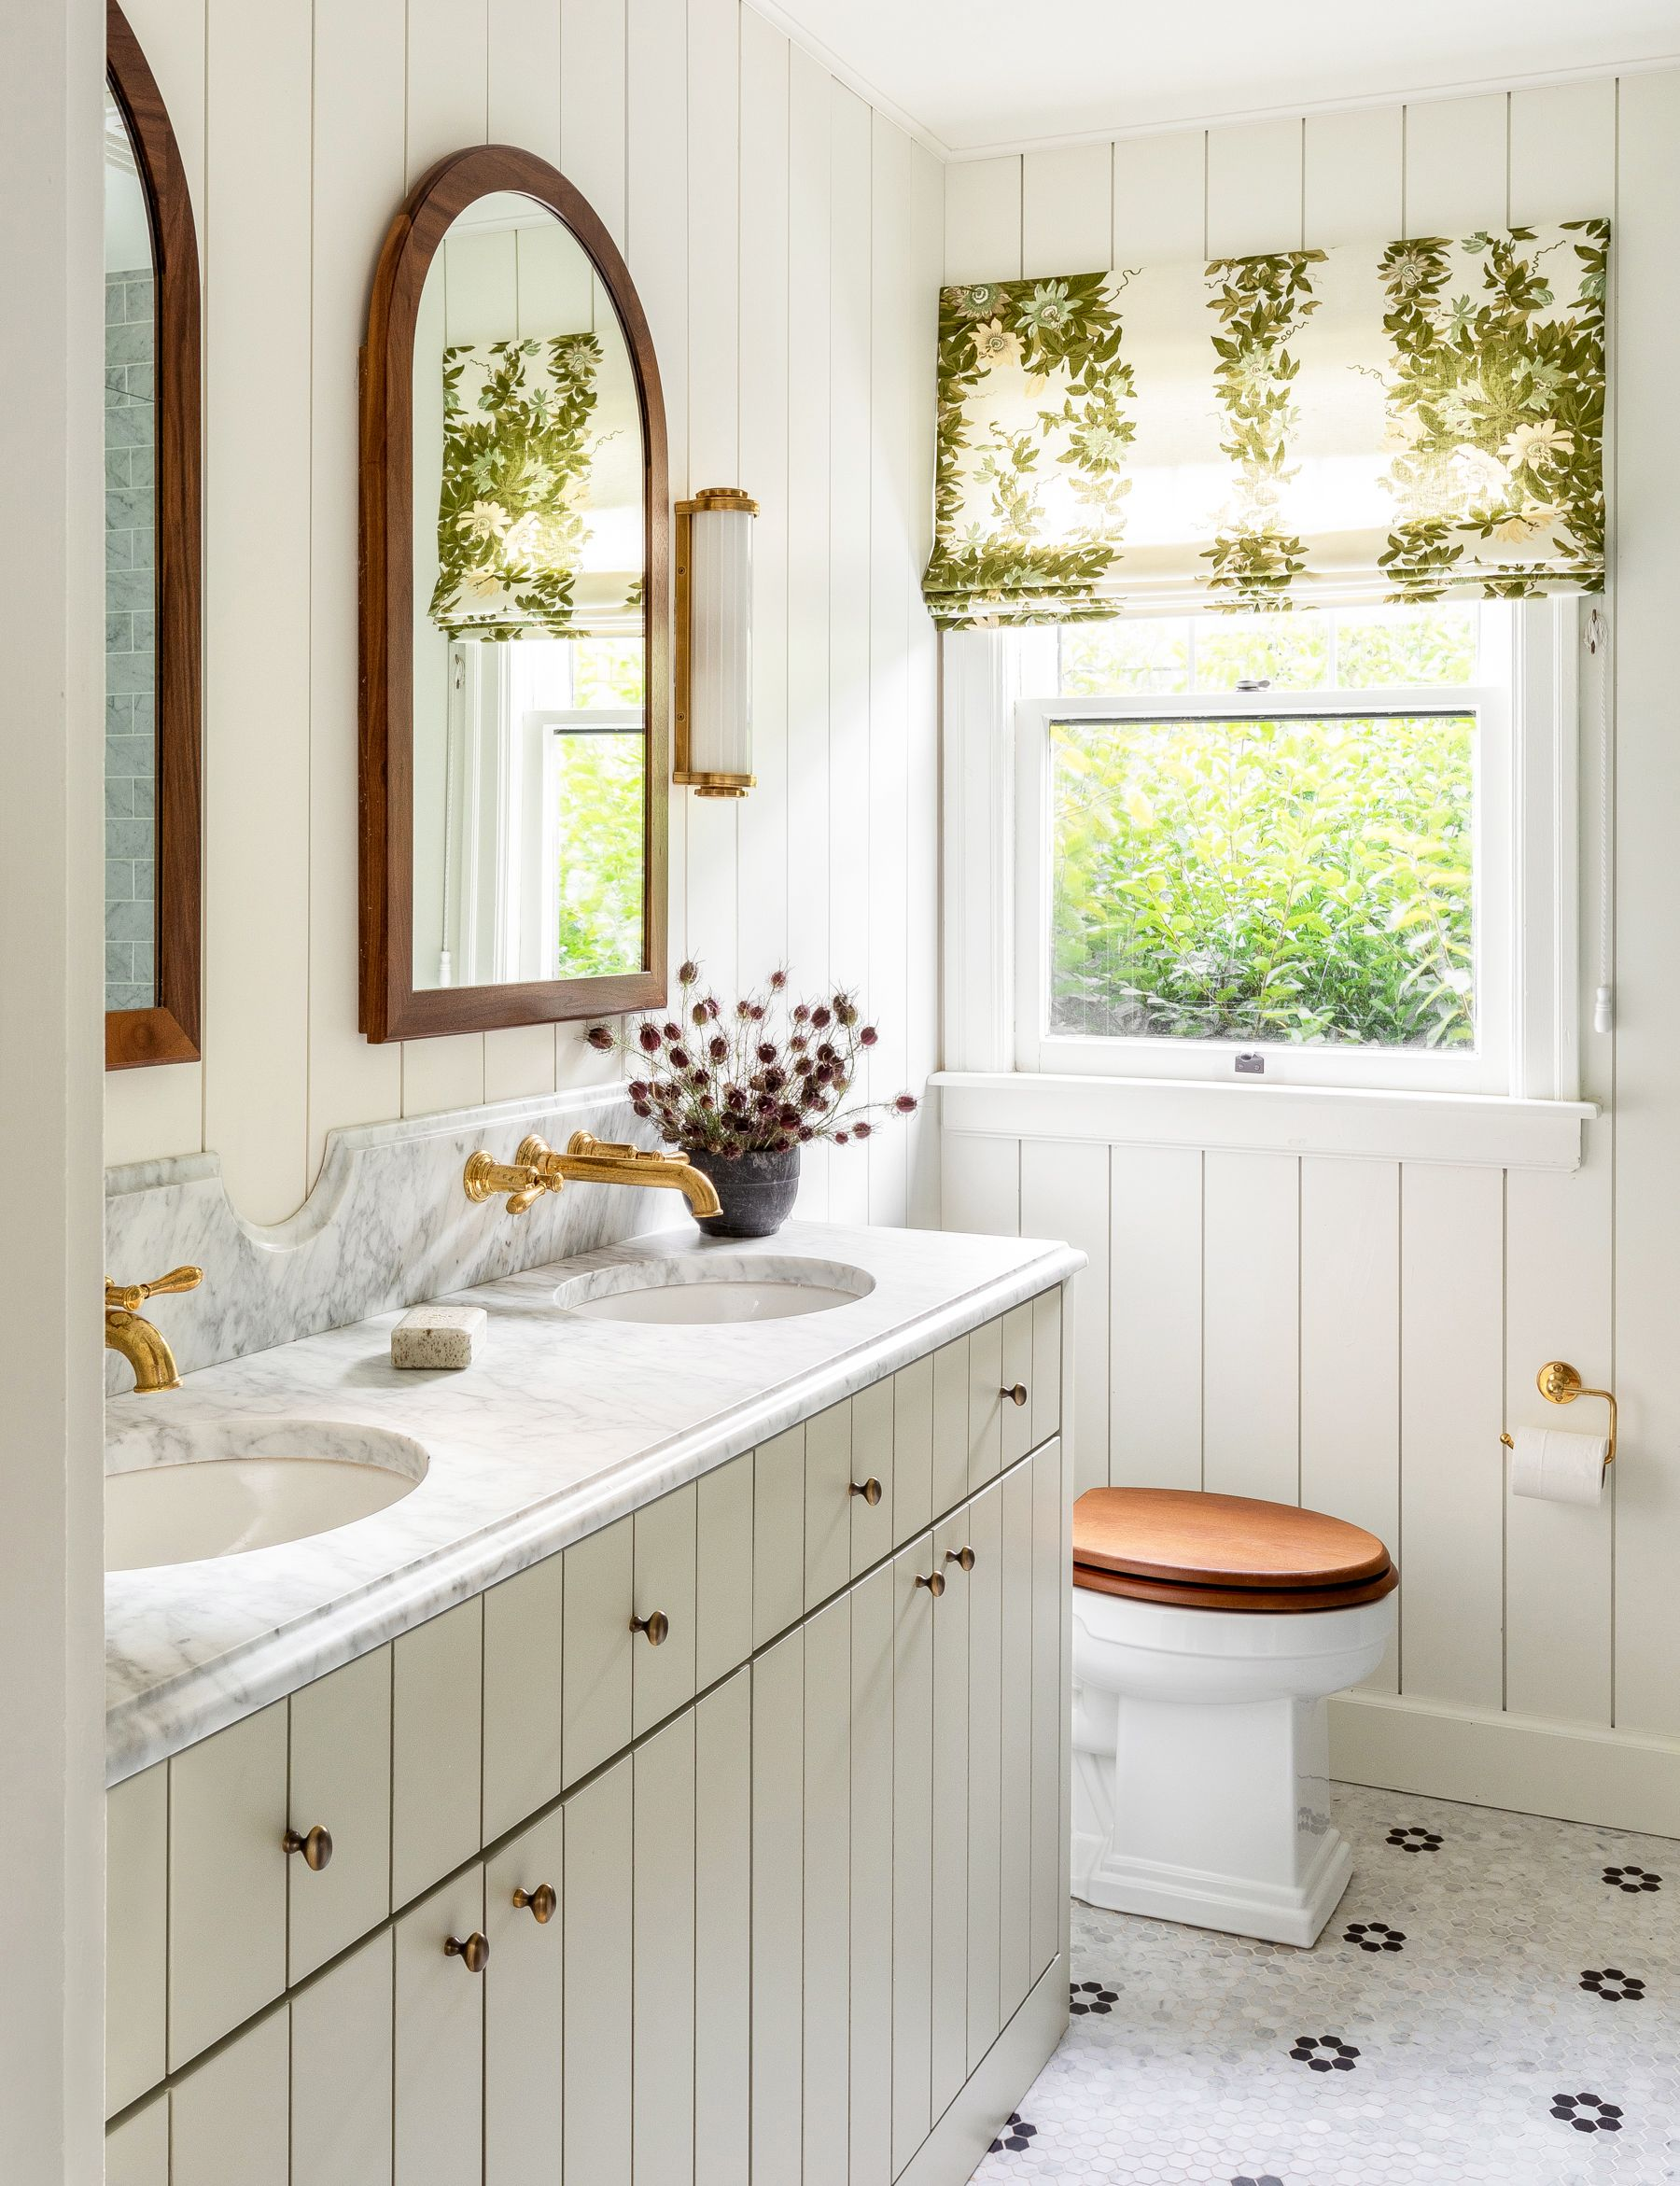 20 Best Farmhouse Bathroom Design Ideas Farmhouse Bathroom Decor